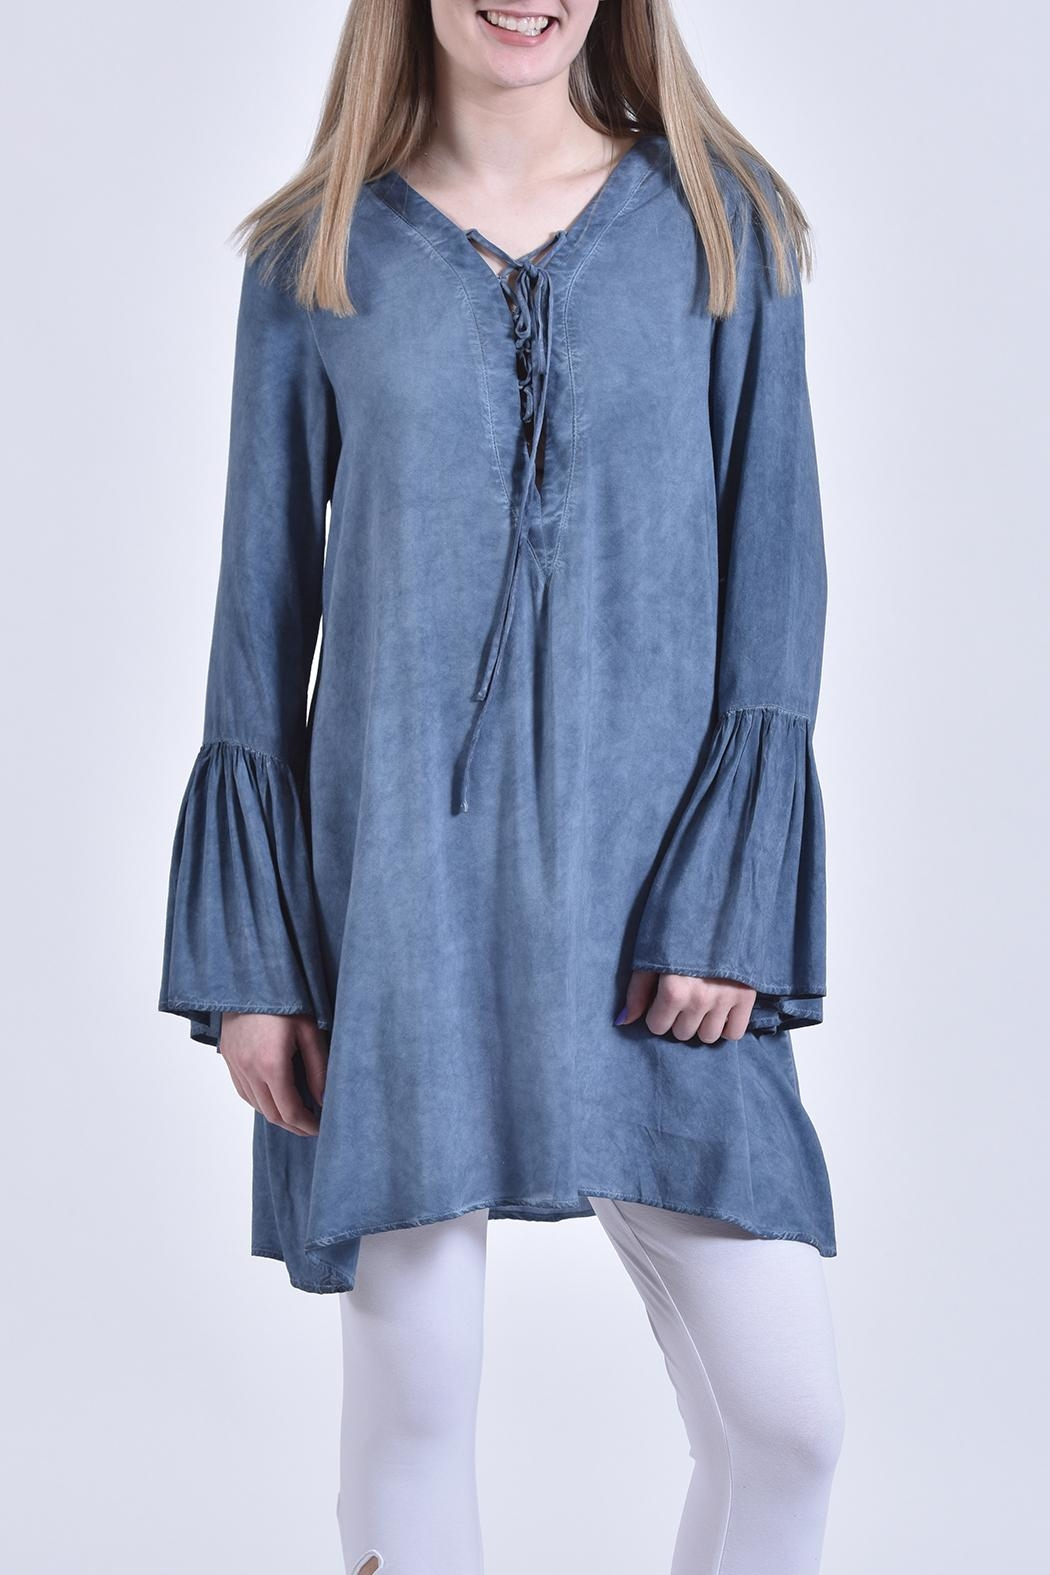 jane plus one Bell Sleeve Blouse - Main Image